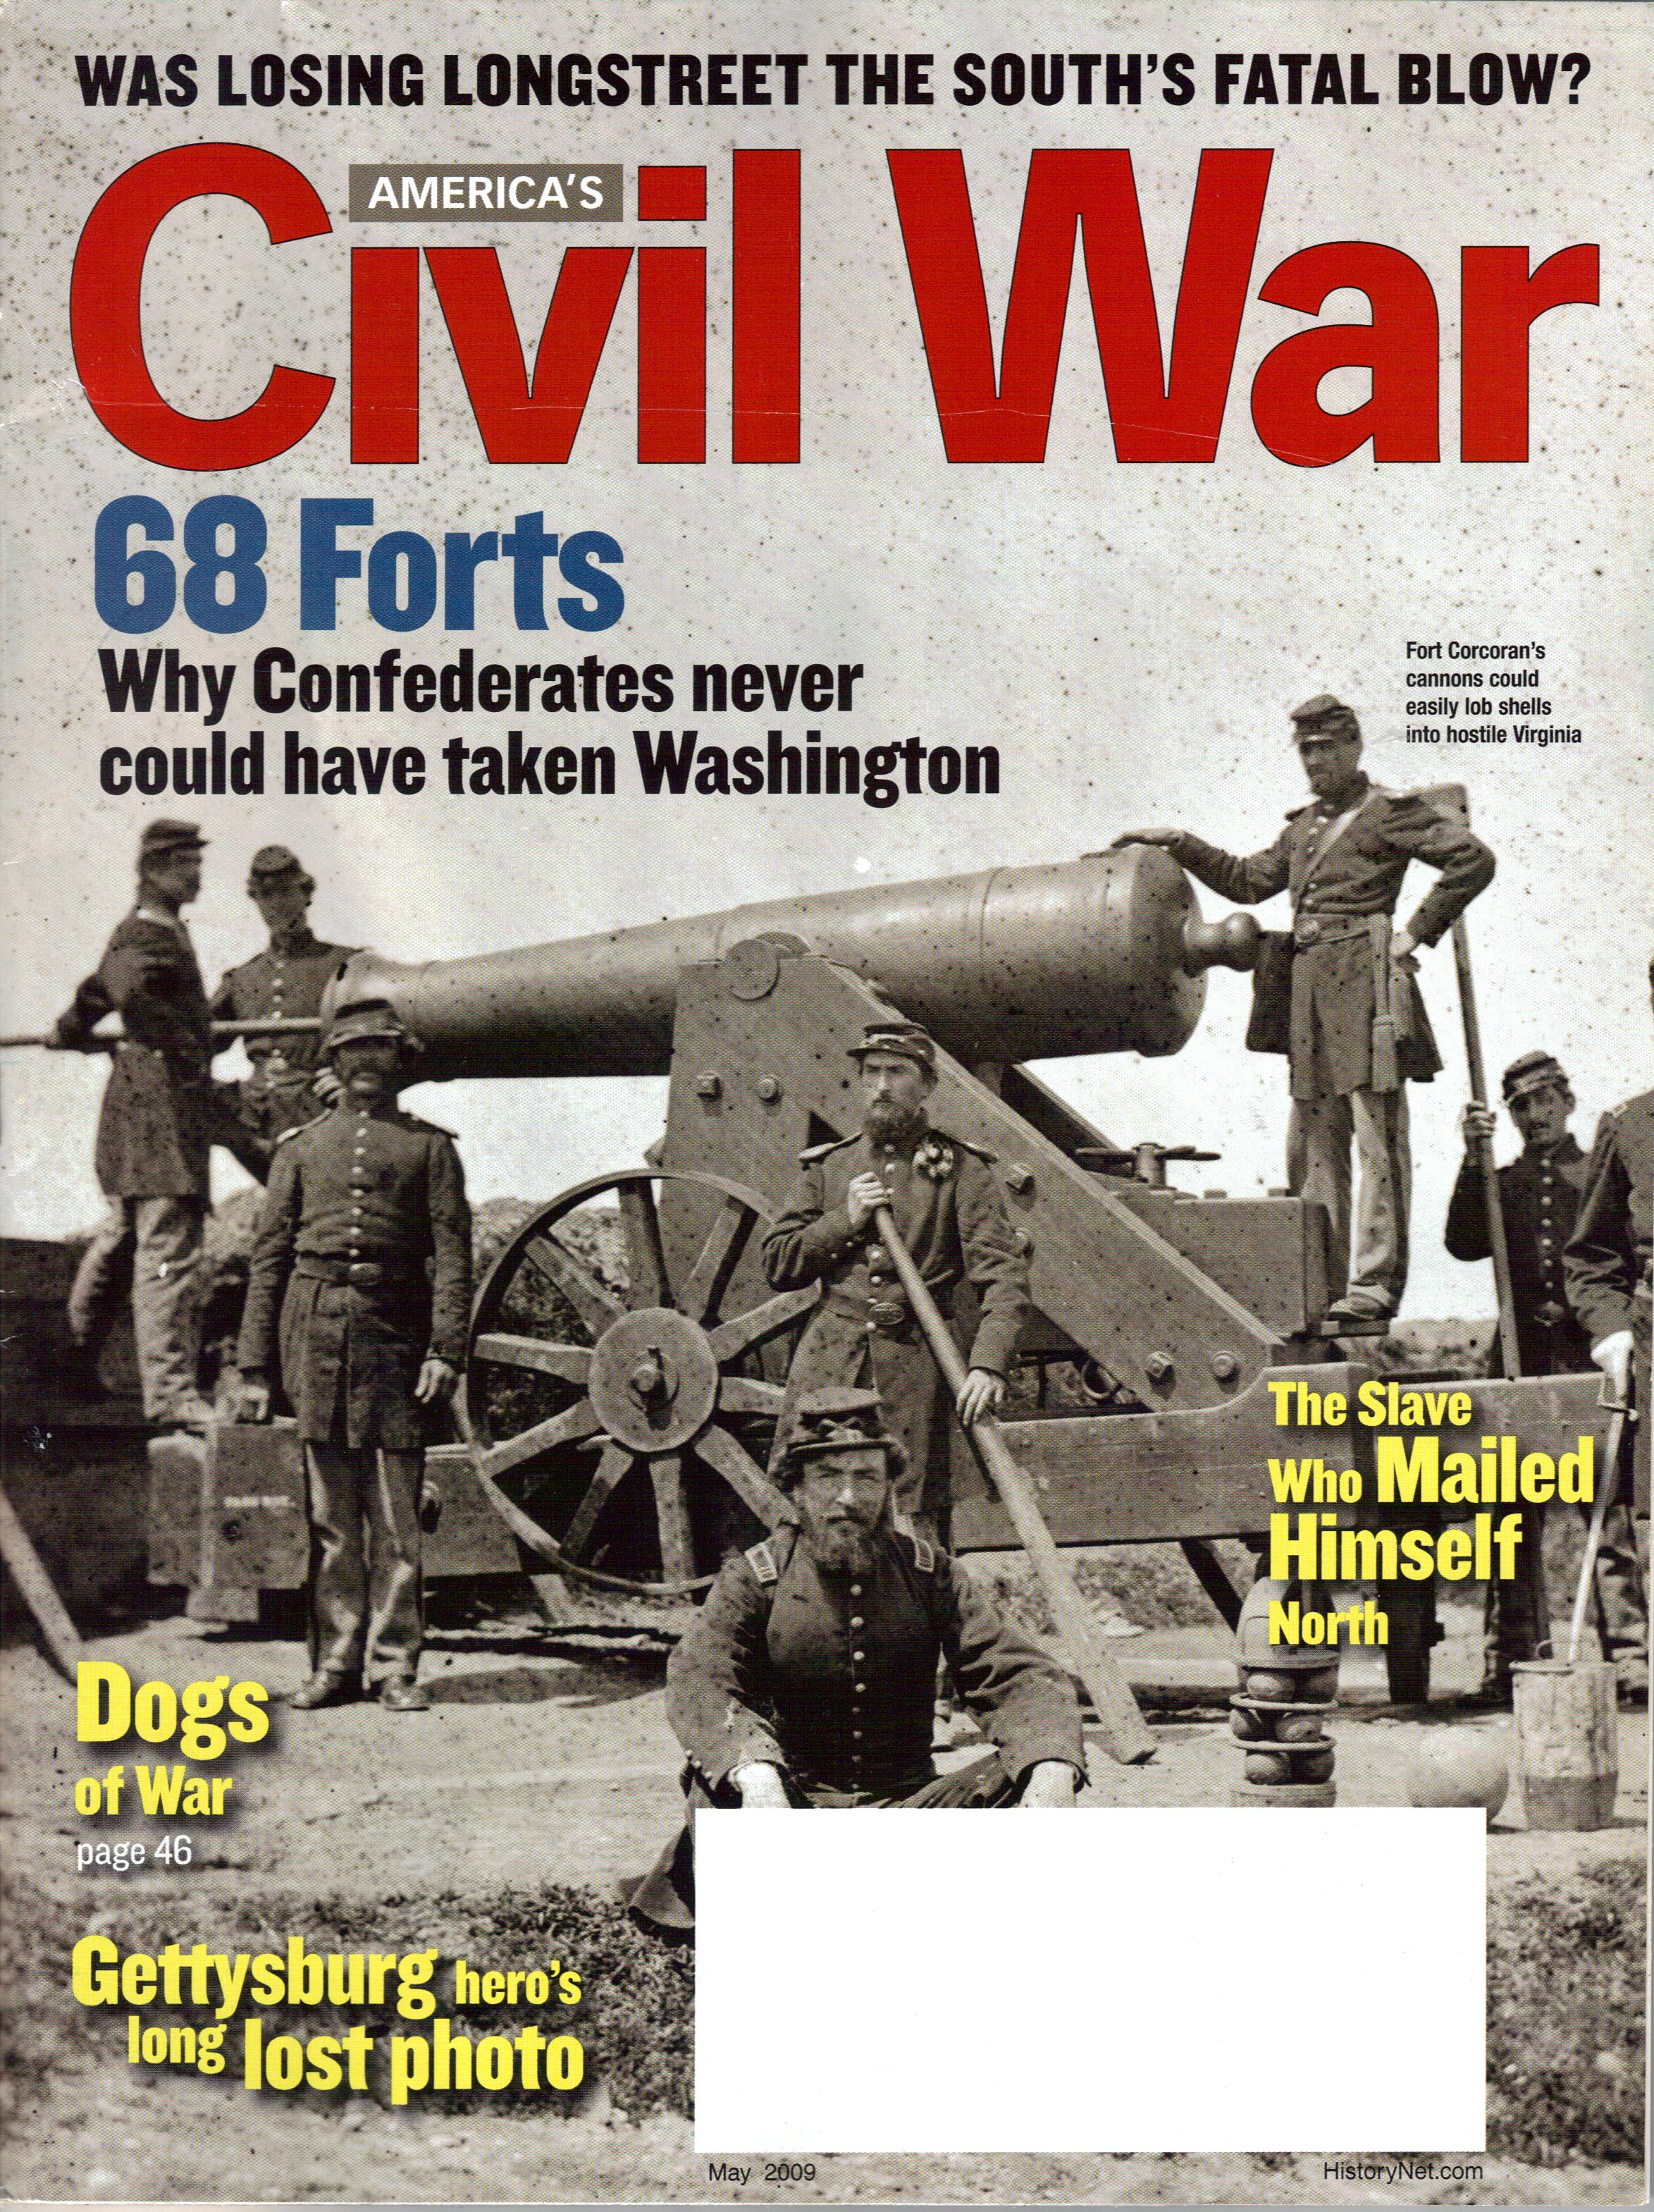 Americas Civil War, Volume 22, Number 2 (May 2009)